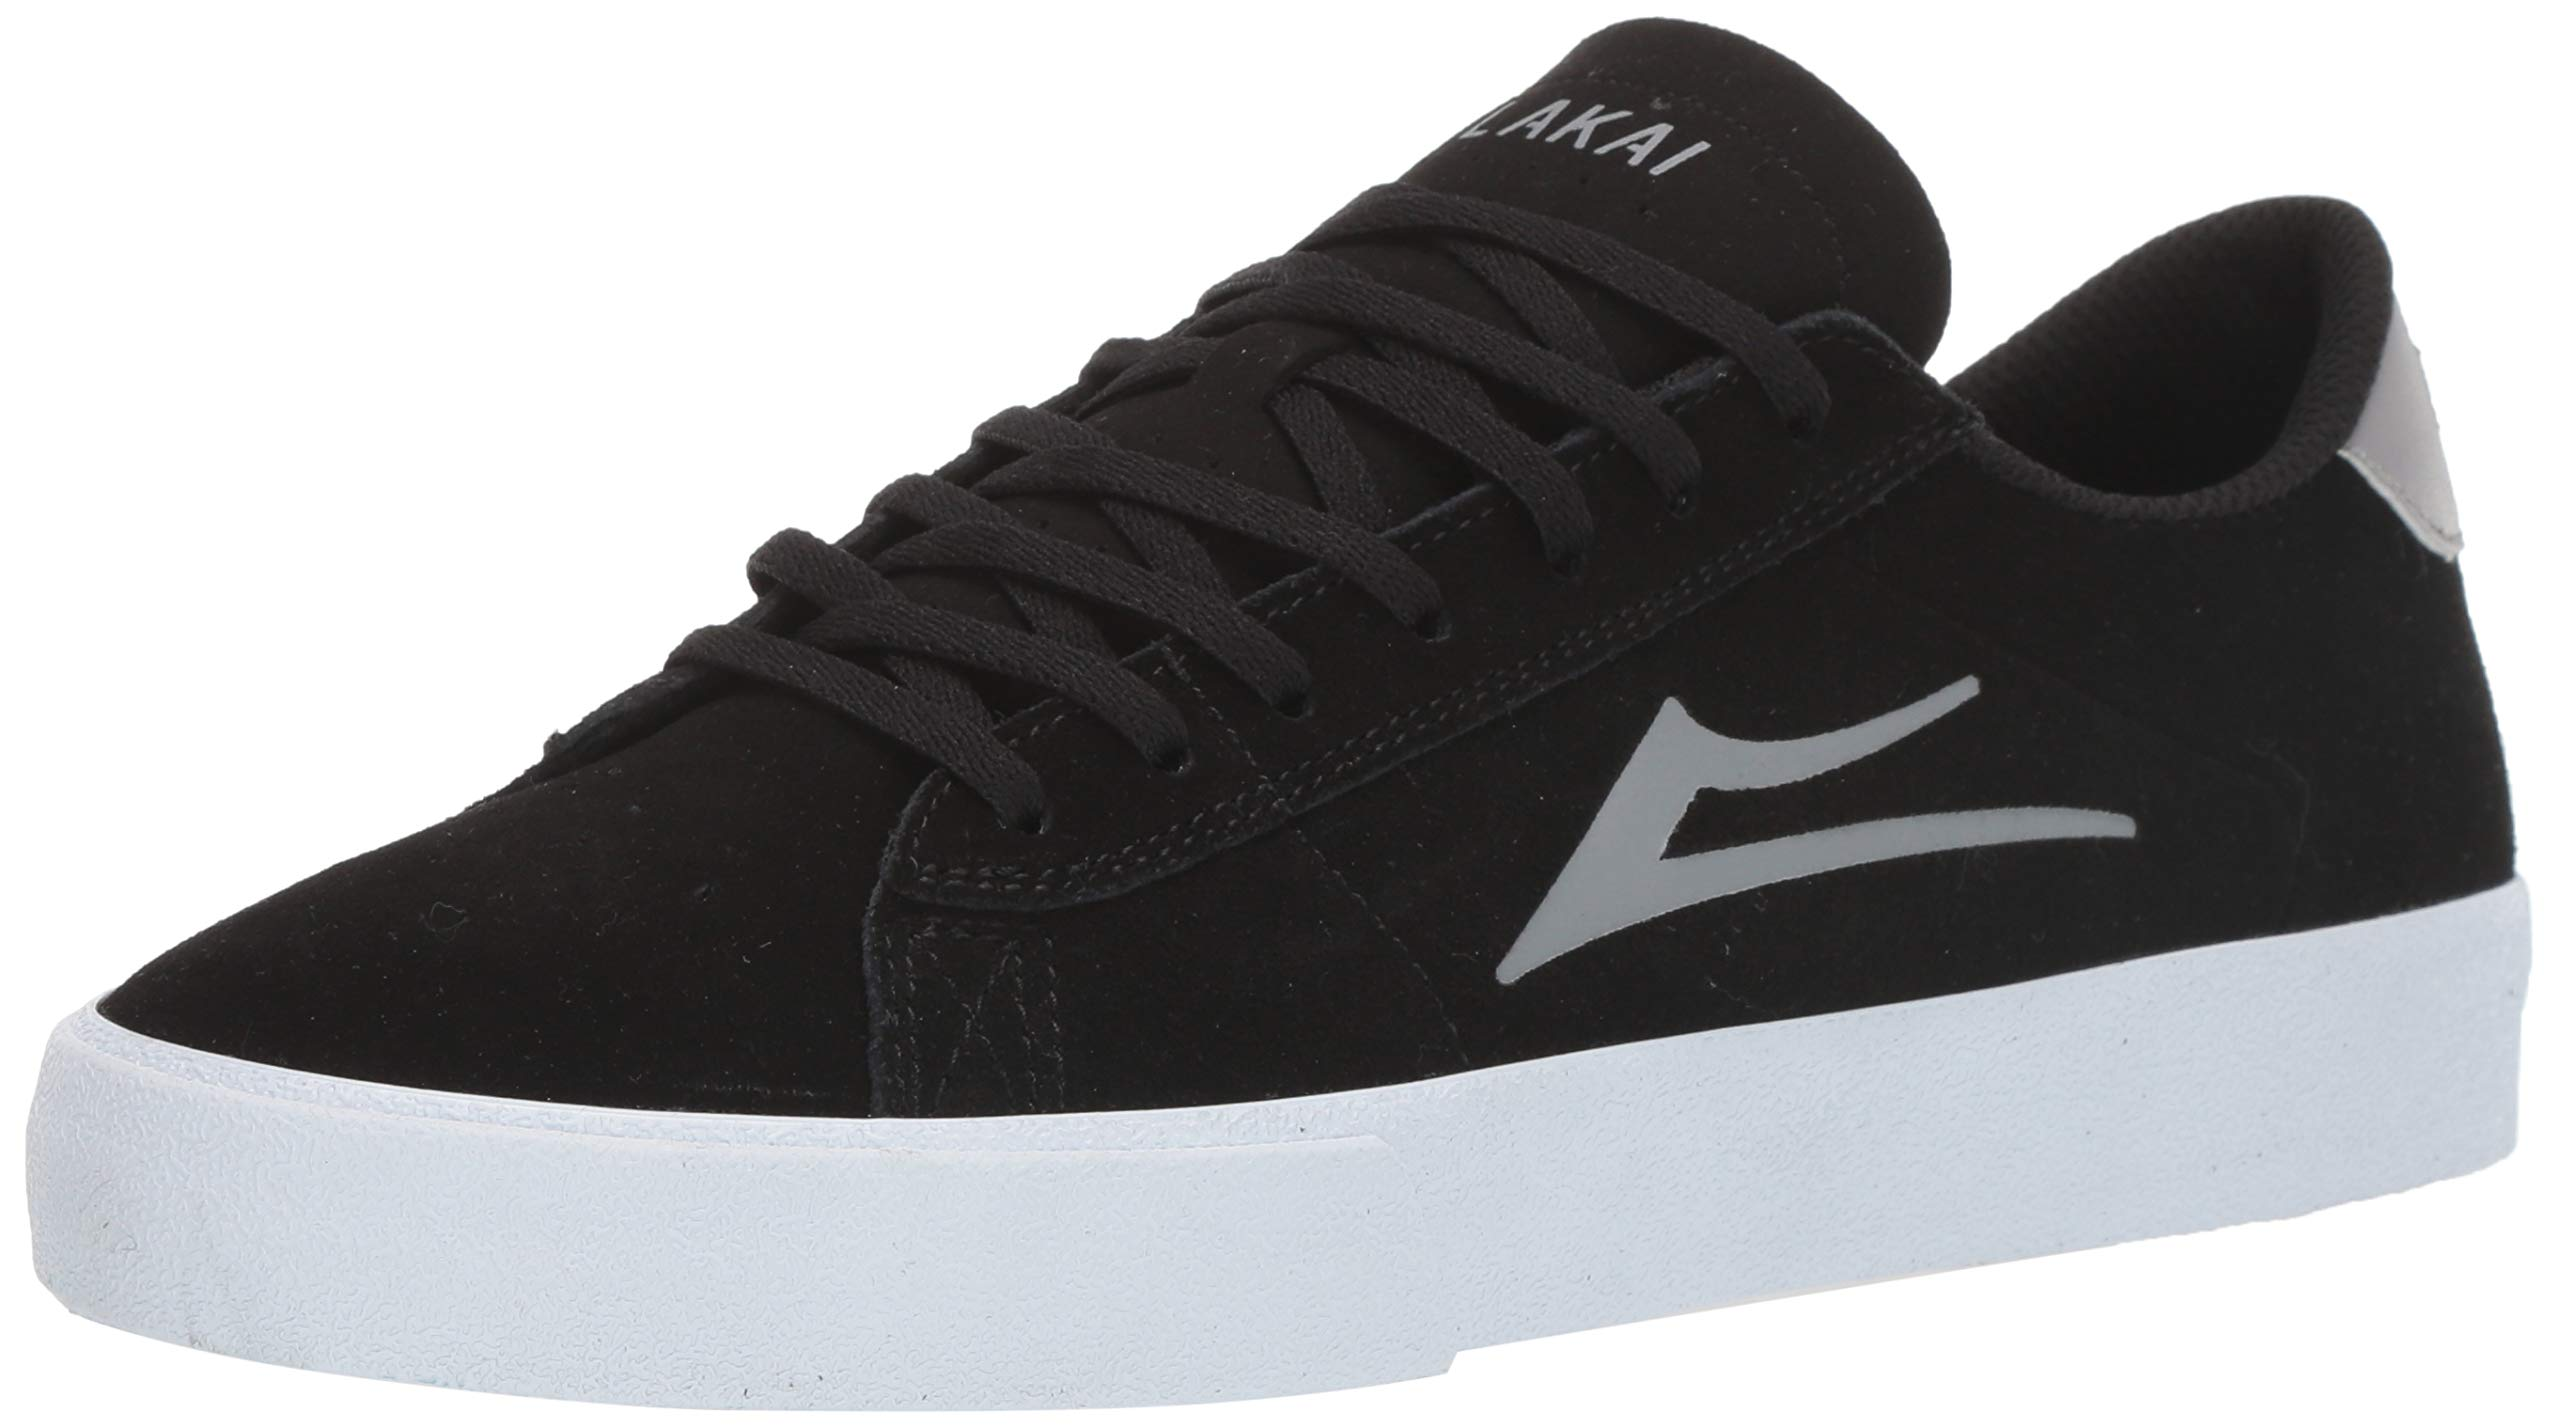 Lakai Limited Footwear Mens Newport Skate Shoe, Black/Light Grey Suede, 9.5 M US by Lakai Limited Footwear Mens